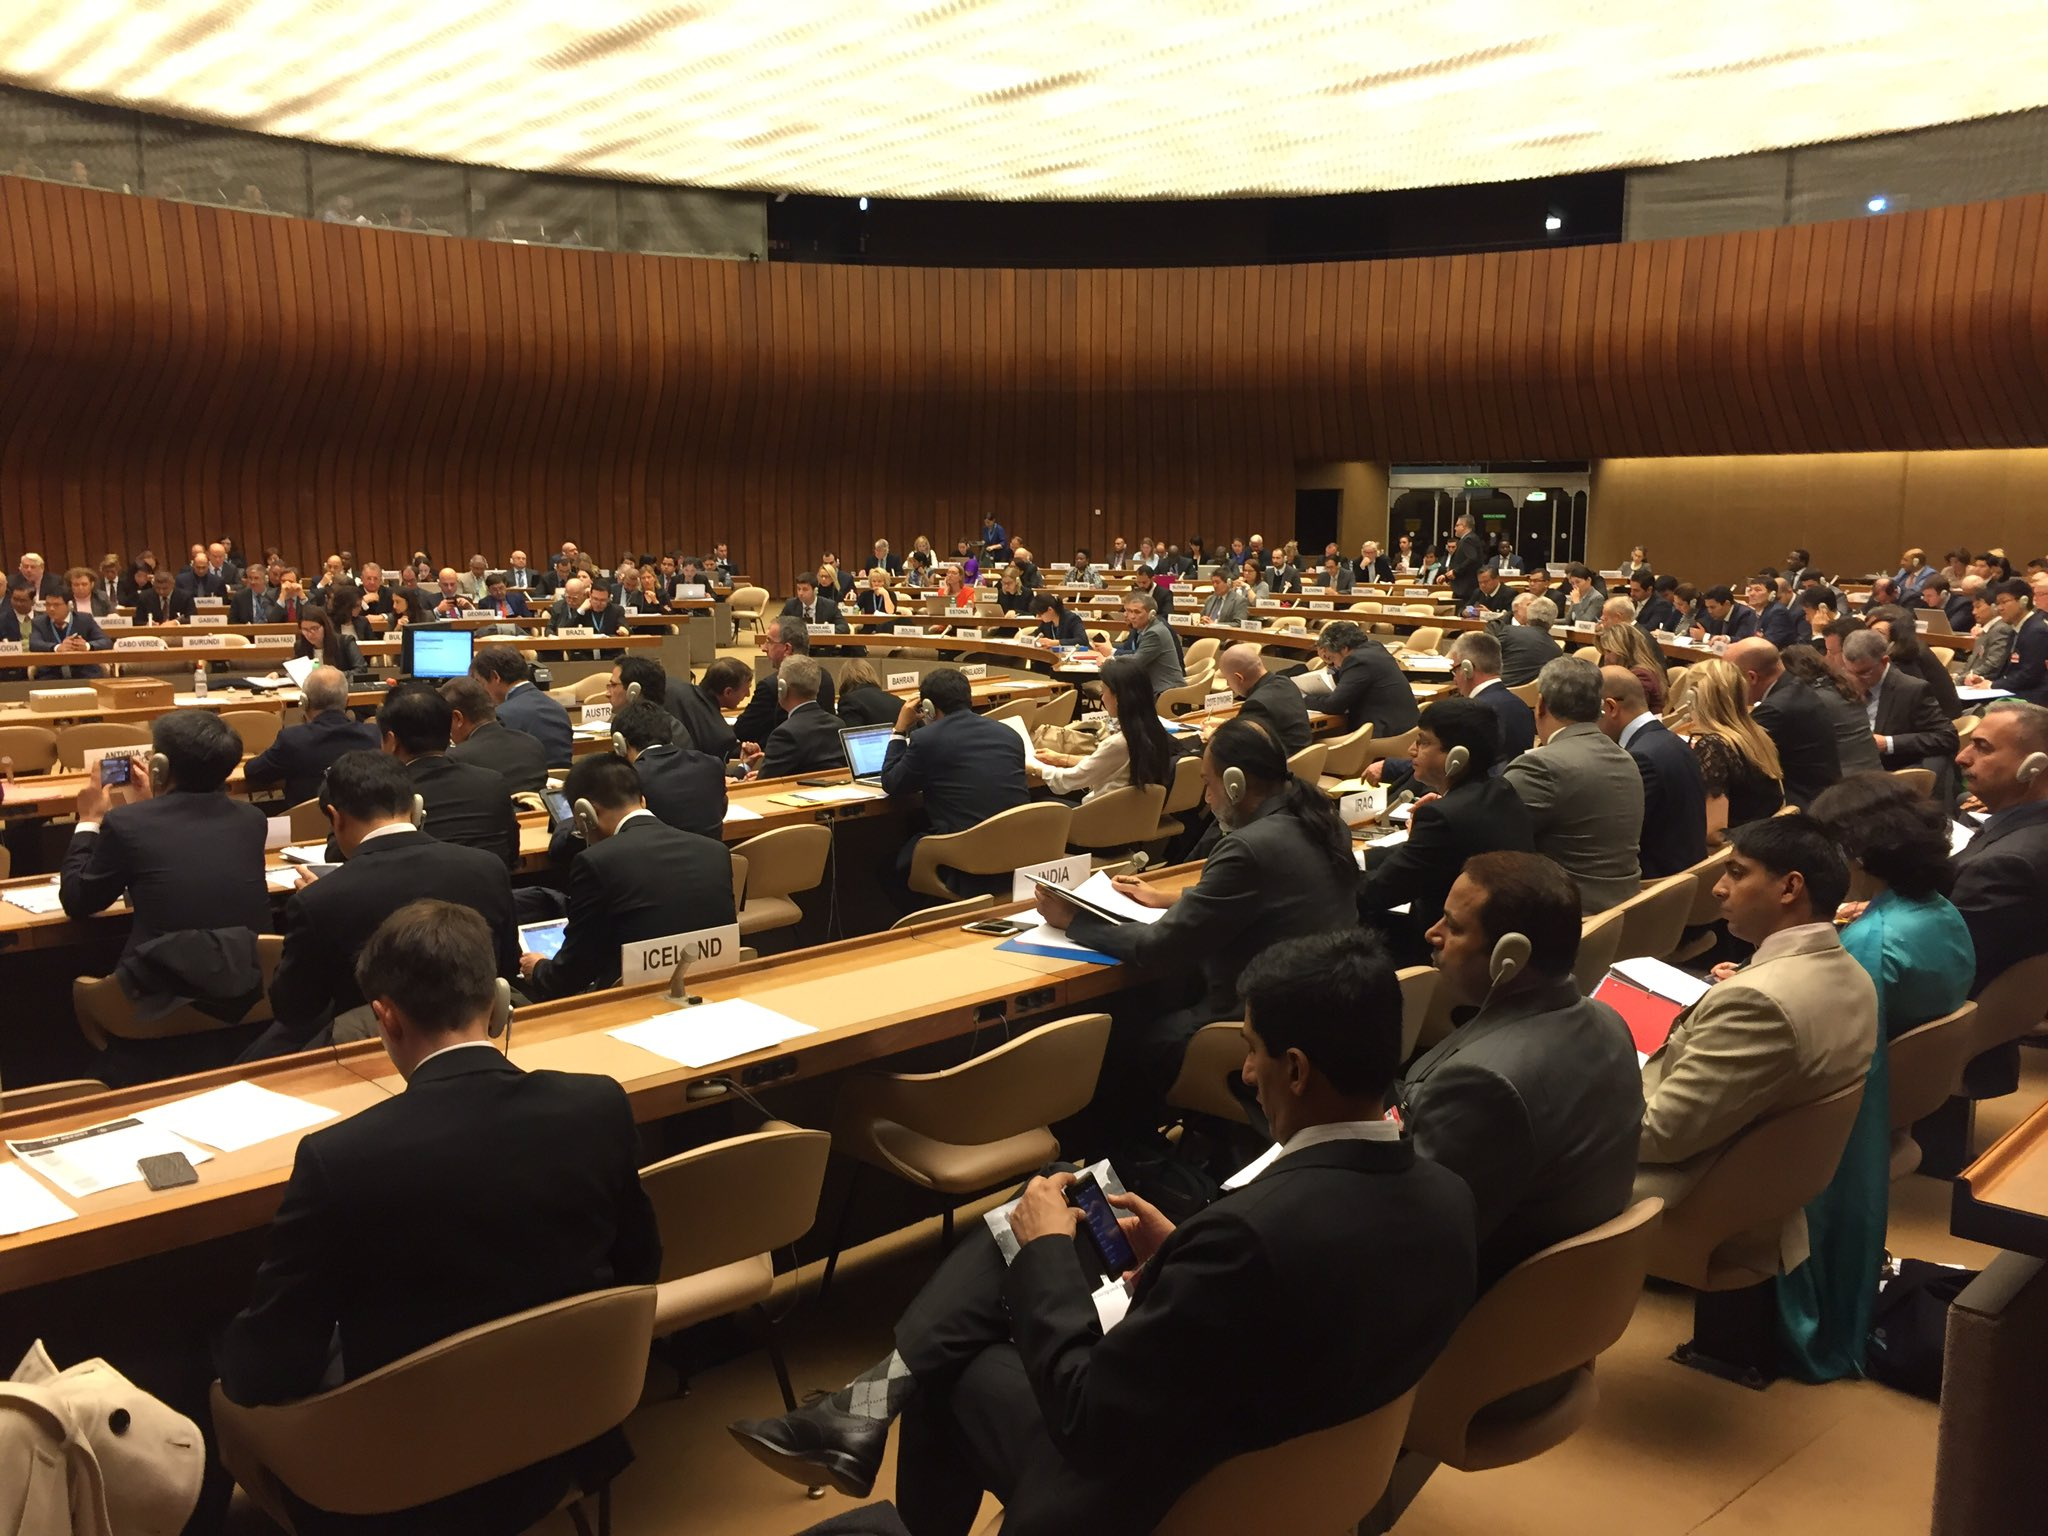 Very full room for this #CCWUN Review Conference with approx 100 states. Swift adoption of agenda, rules of procedure, approval of roles https://t.co/uezyF2sT17